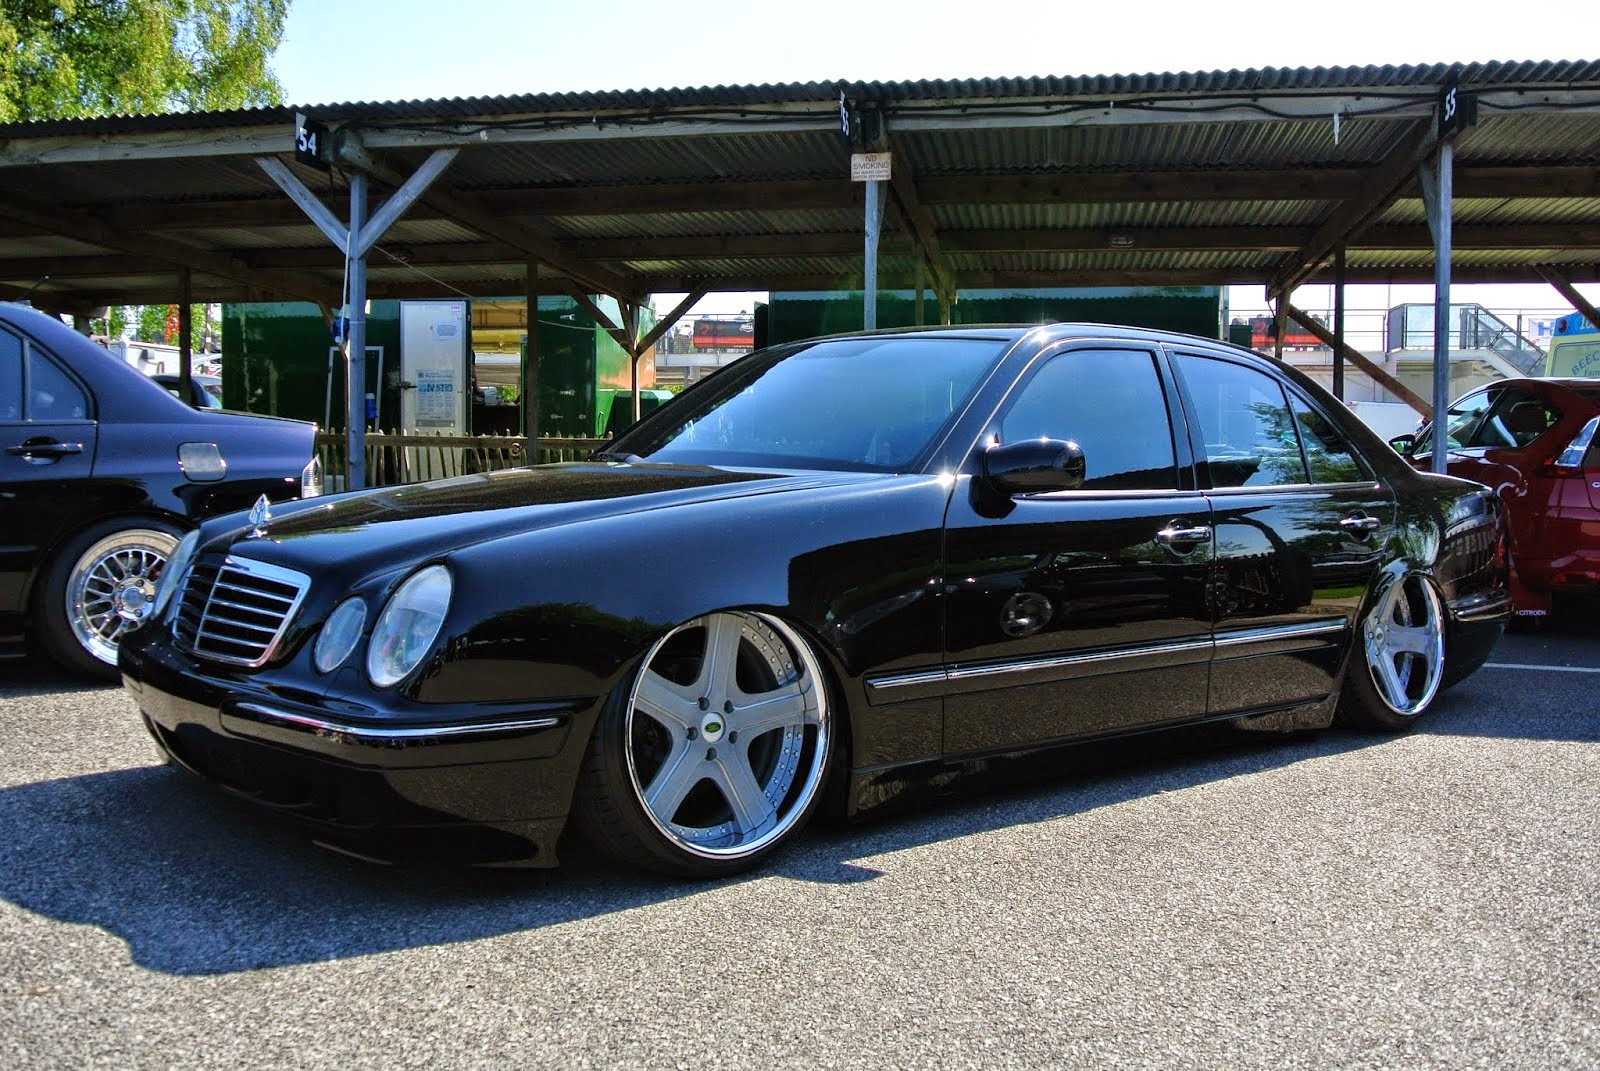 mercedes benz e klasse w210 stance style benztuning. Black Bedroom Furniture Sets. Home Design Ideas